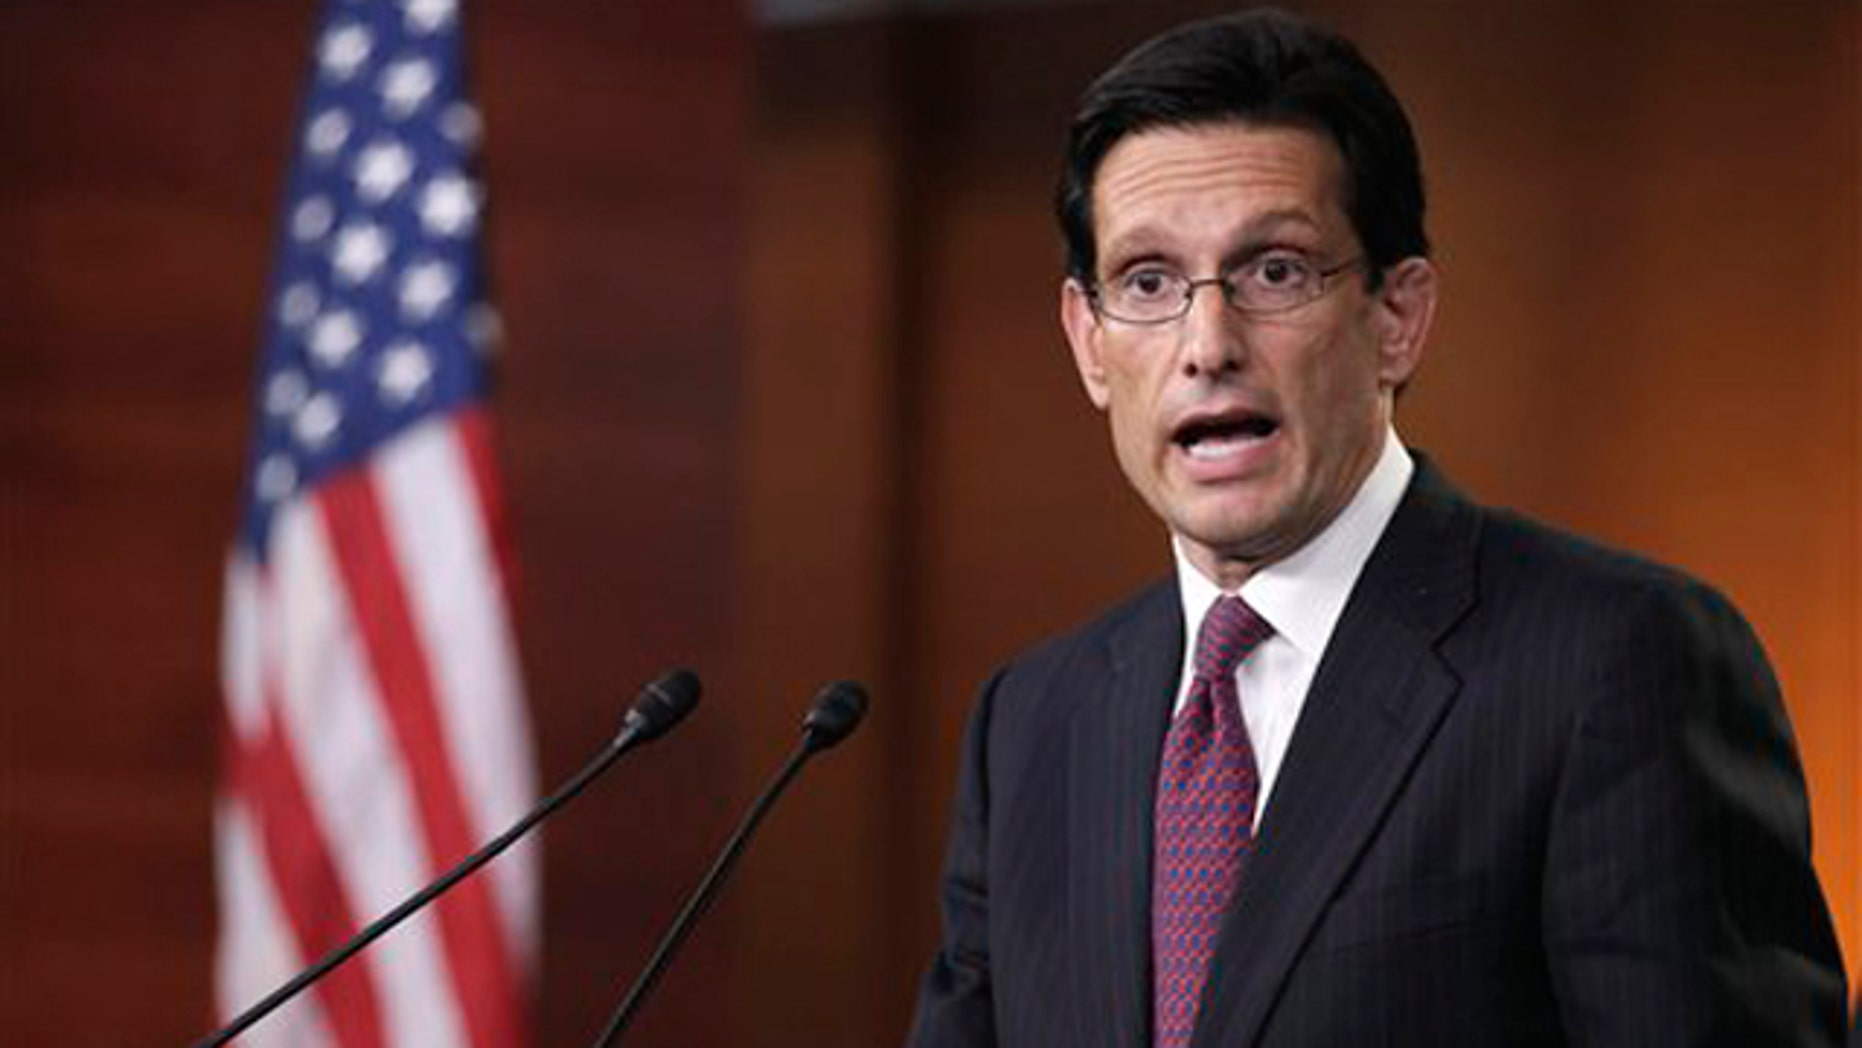 House Majority Leader Eric Cantor gestures during a news conference on Capitol Hill April 7.